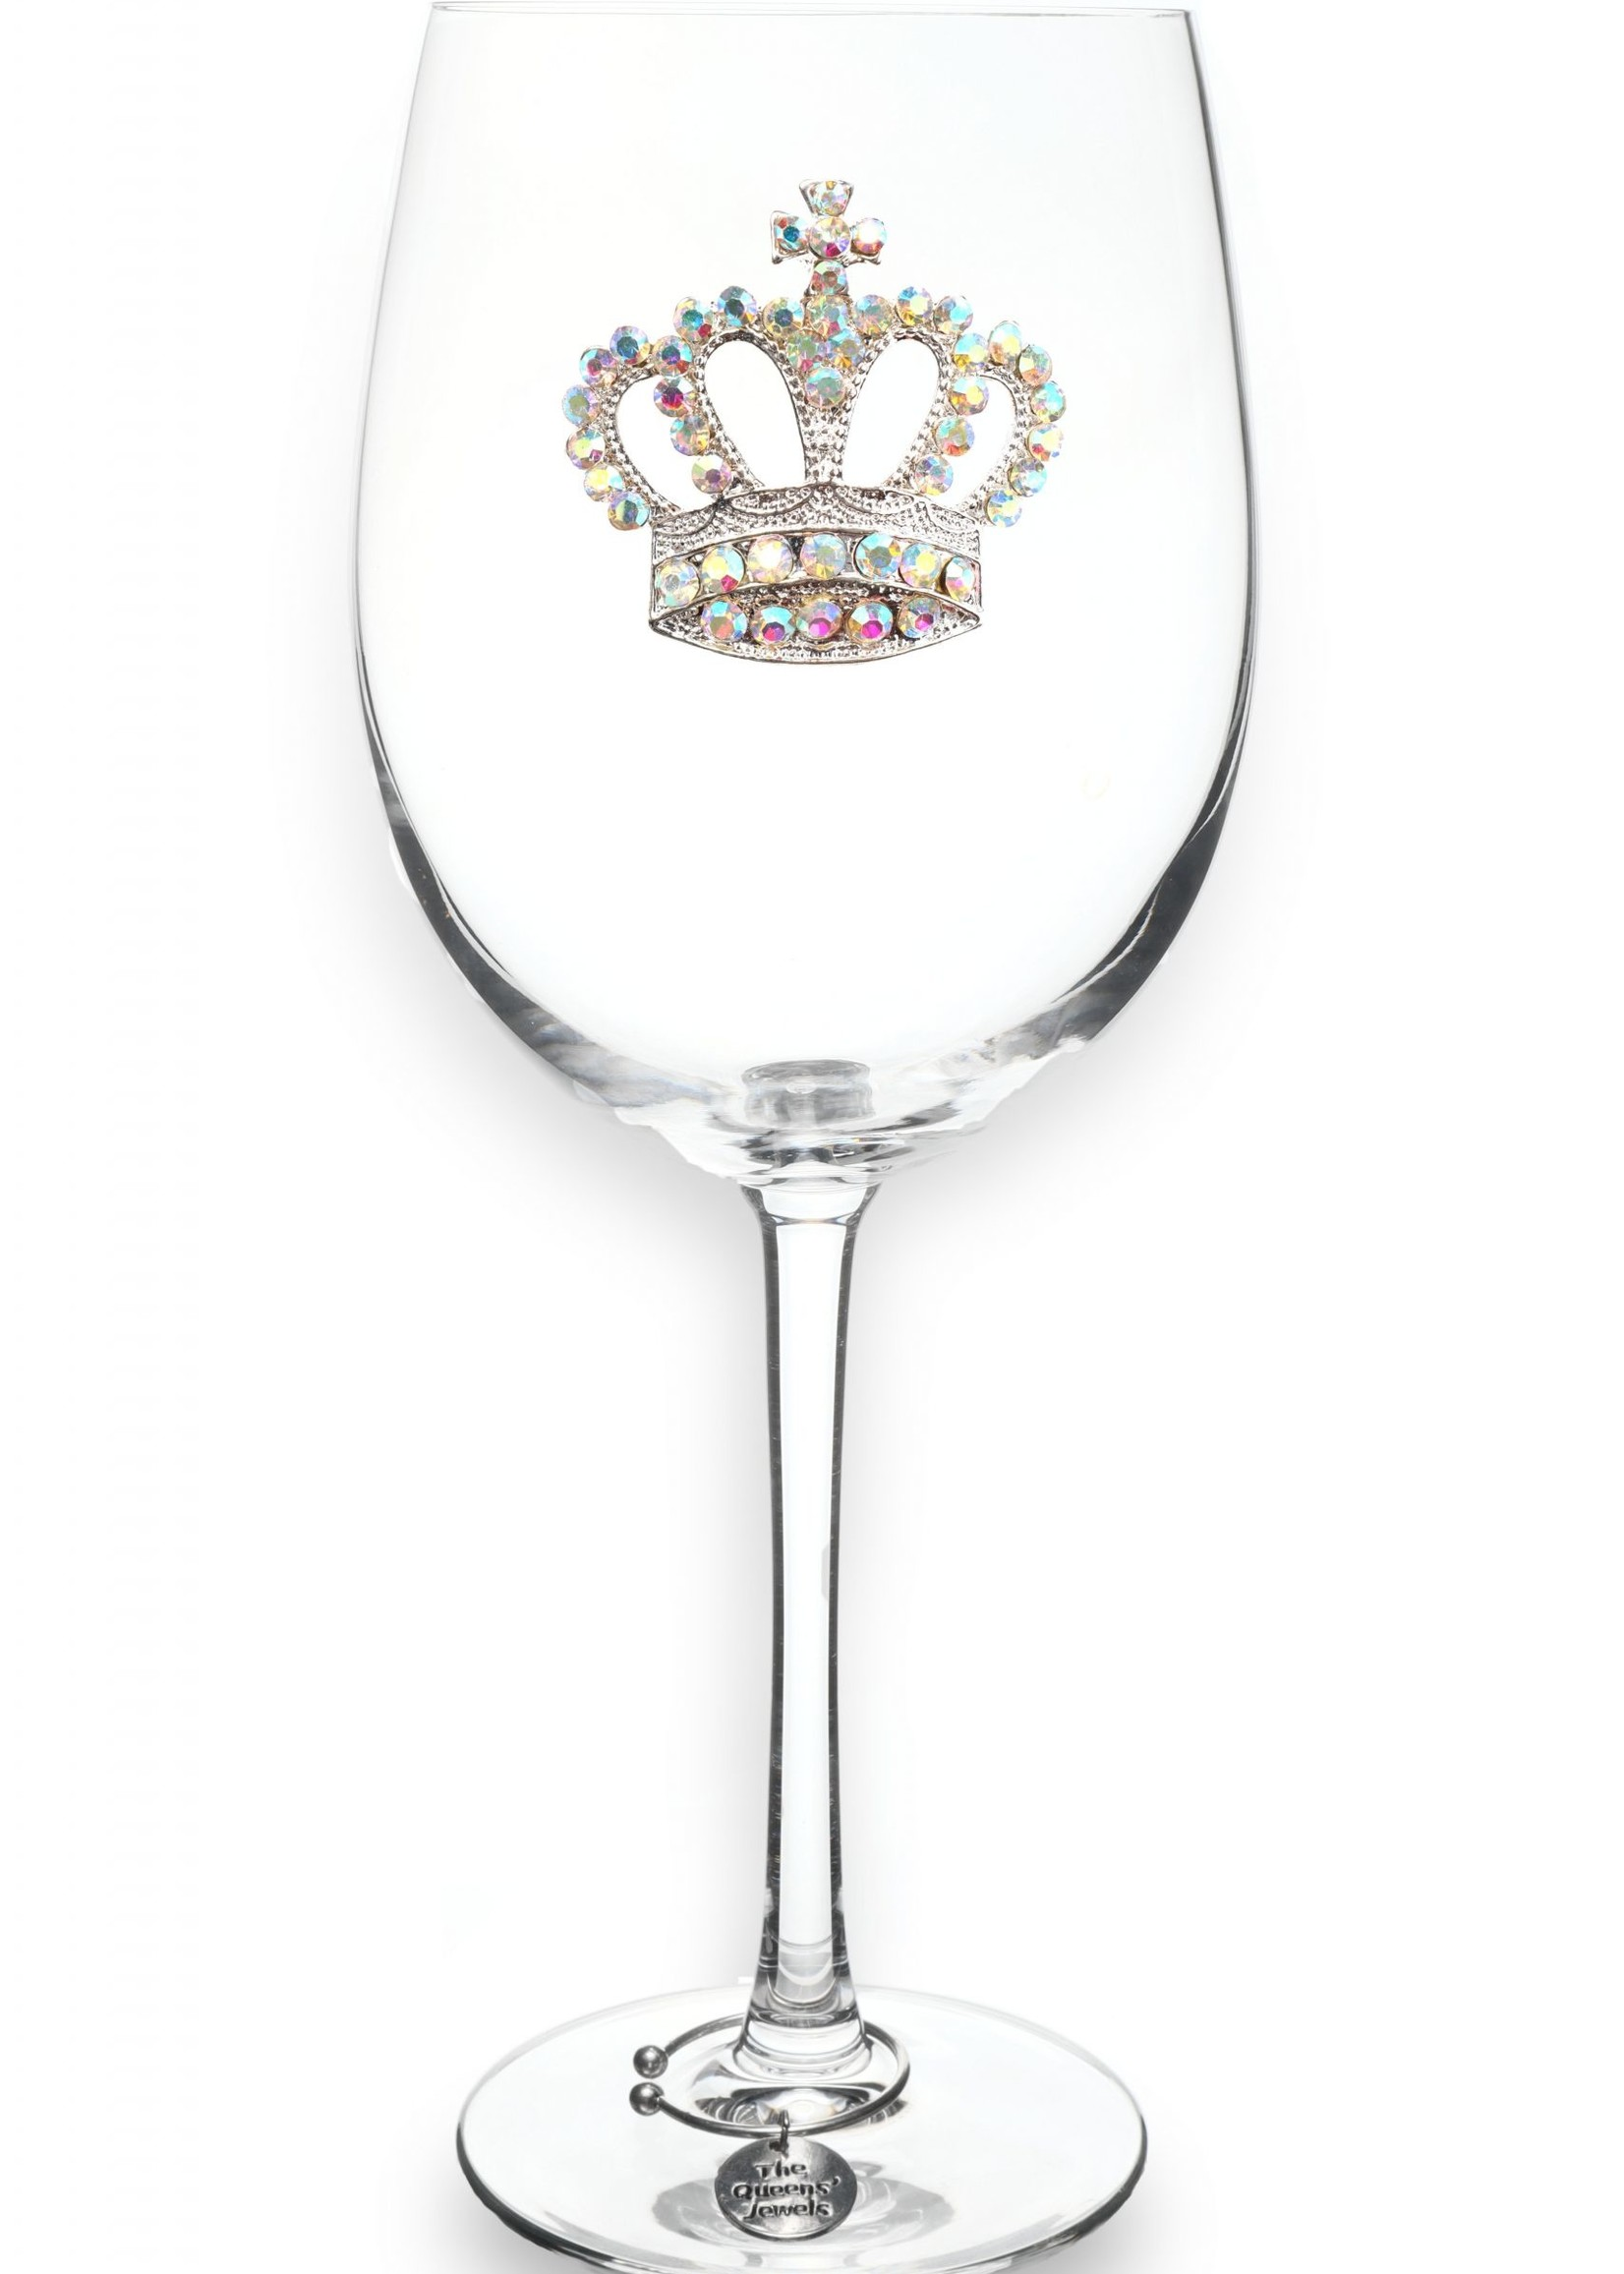 The Queen's Jewels Aurora Boreal Crown Stemmed Wine Glass